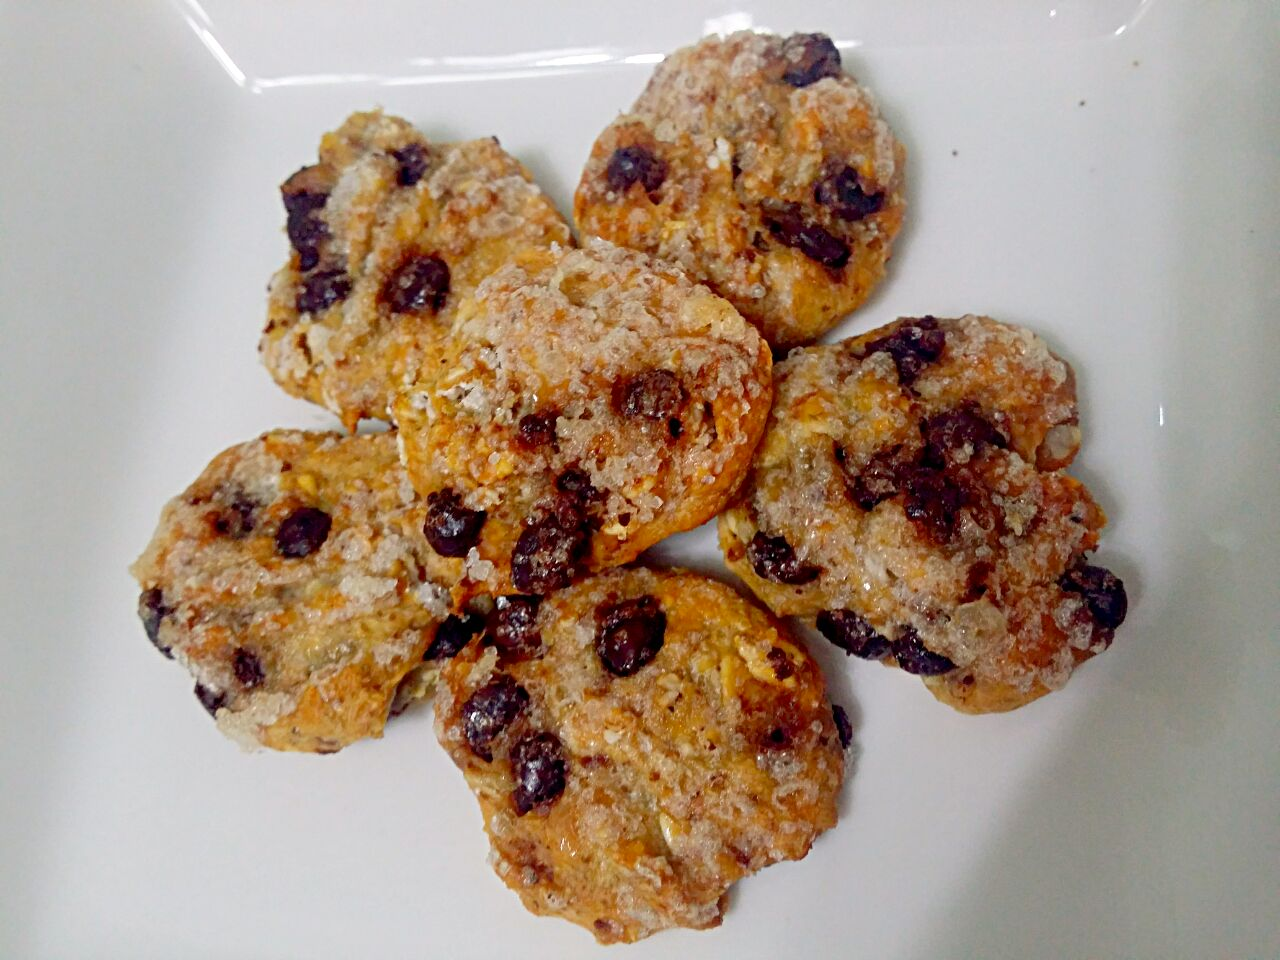 Oatmeal choc chip cookies + low fat yoghurt  (No Butter No sugar added)